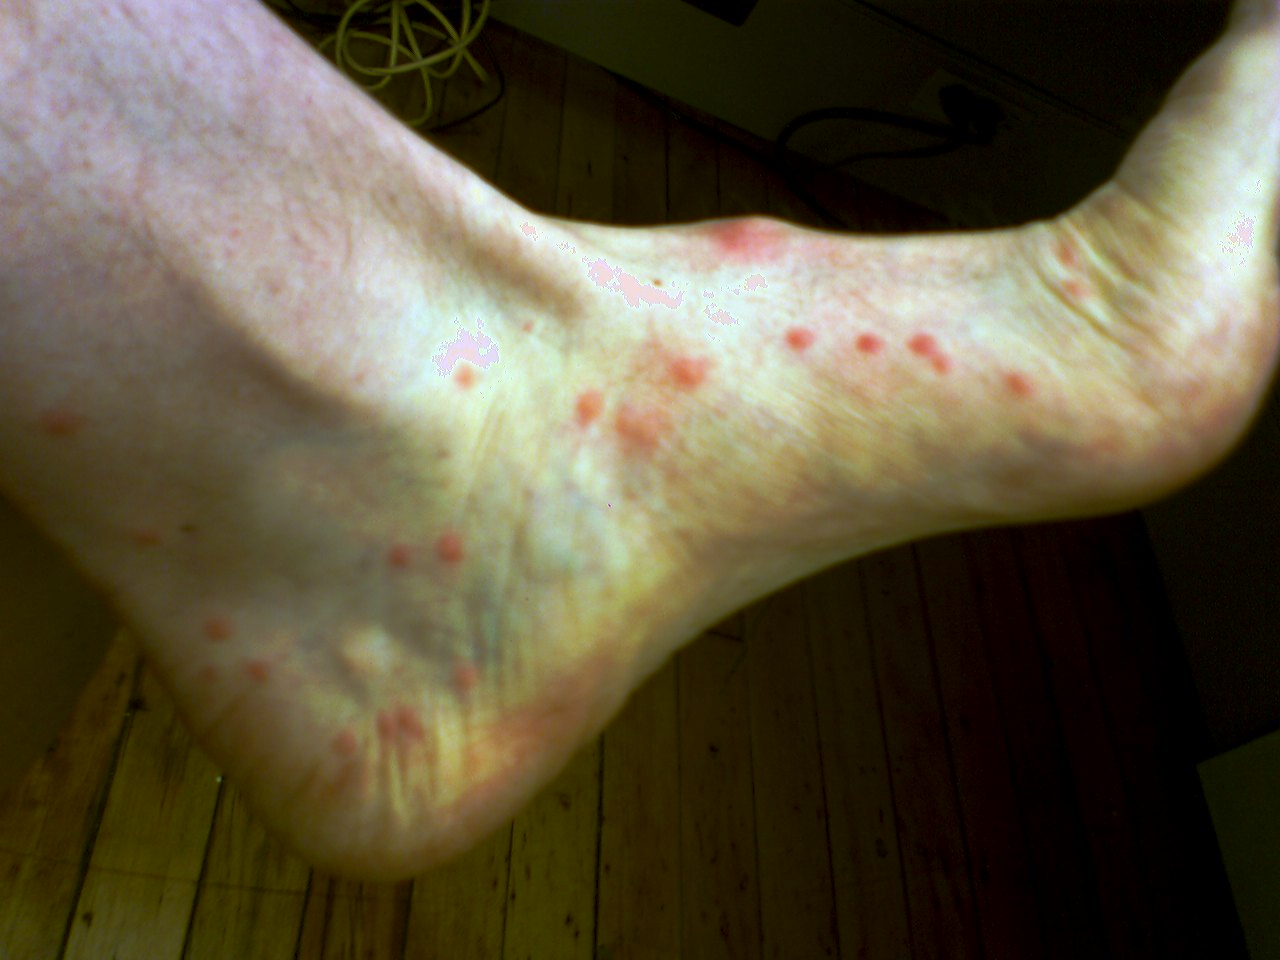 Picture of Flea Bites - WebMD